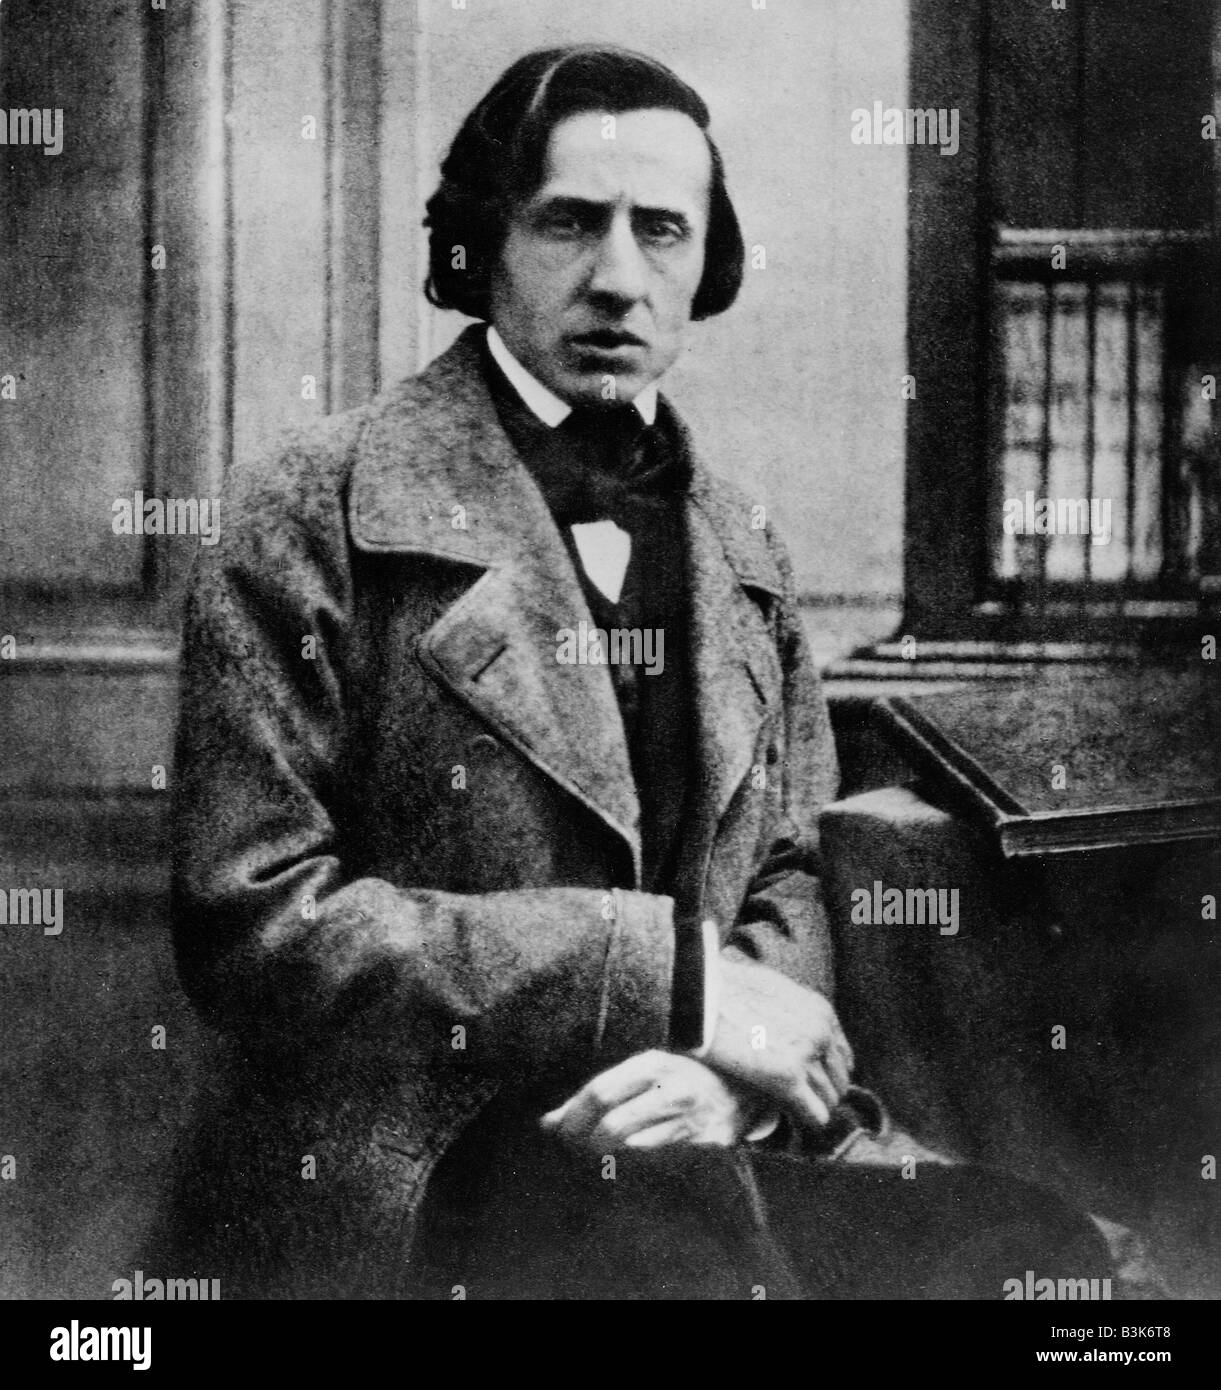 FREDERICK CHOPIN  (1810-1849) Polish composer photographed in 1849 - Stock Image